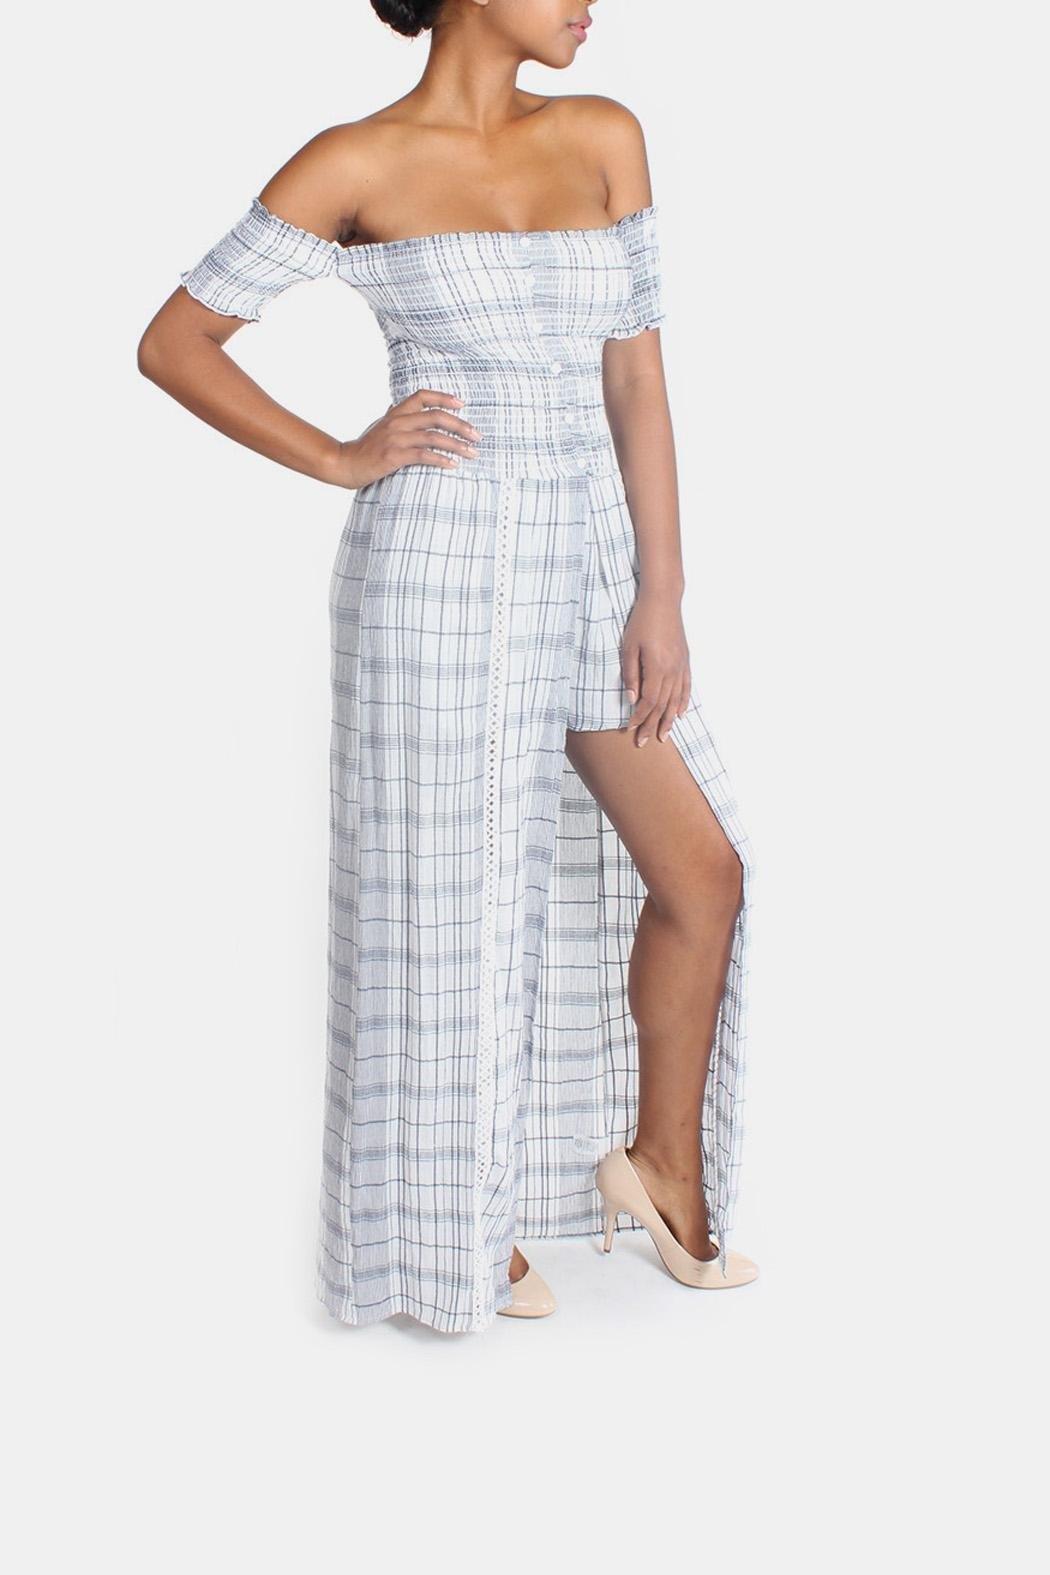 Sage Summer Plaid-Romper Maxi-Dress from Los Angeles by